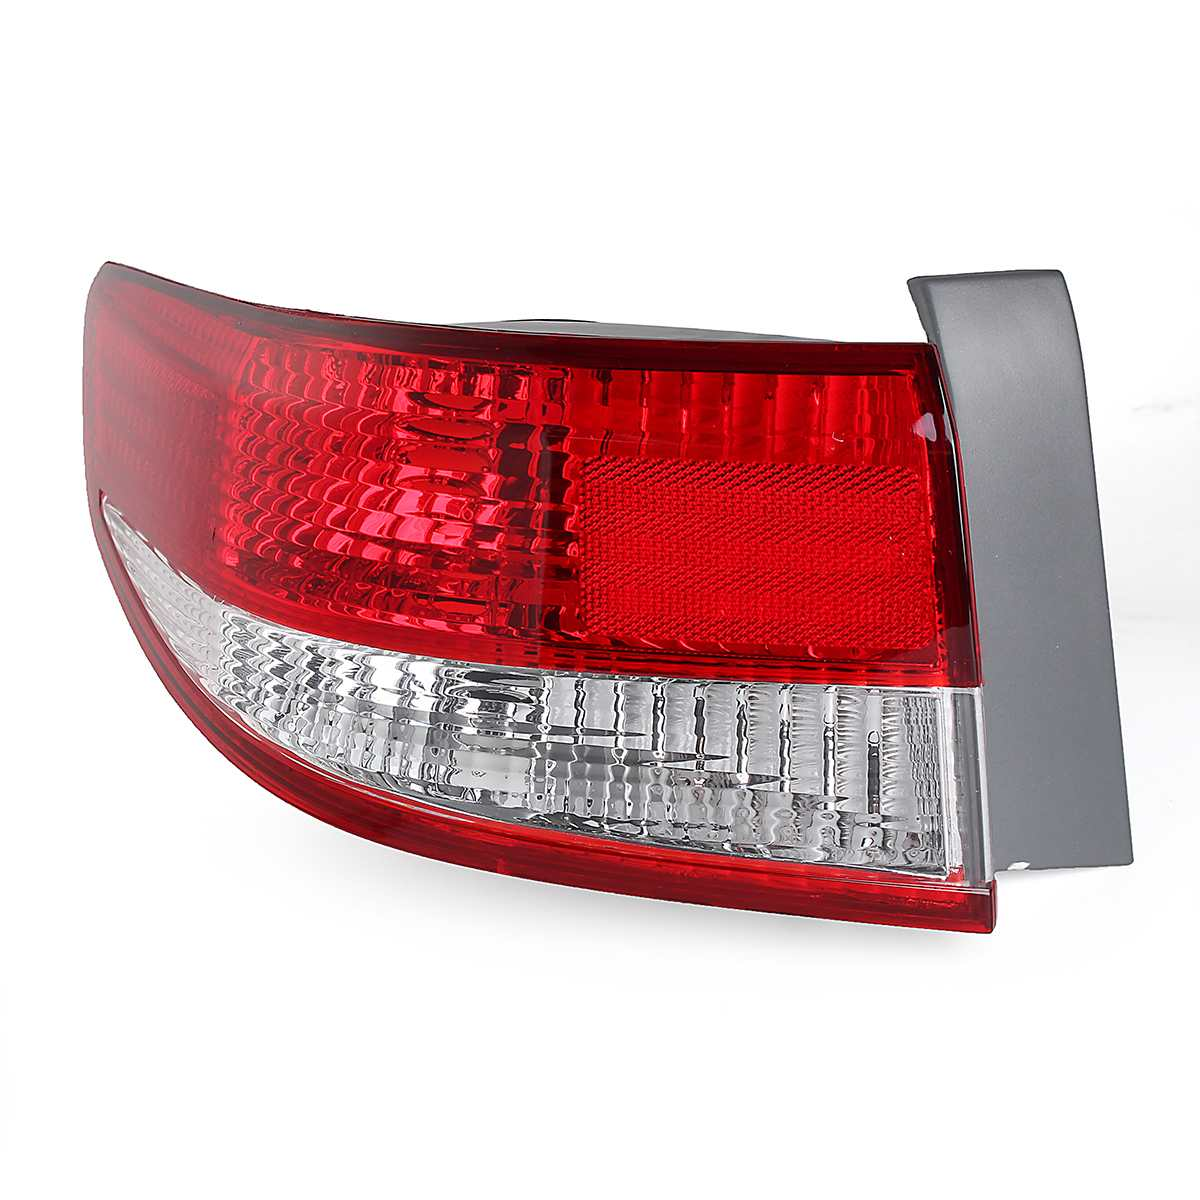 NEW OUTER LEFT TAIL LAMP ASSEMBLY FITS 2003-2004 HONDA ACCORD HO2800148